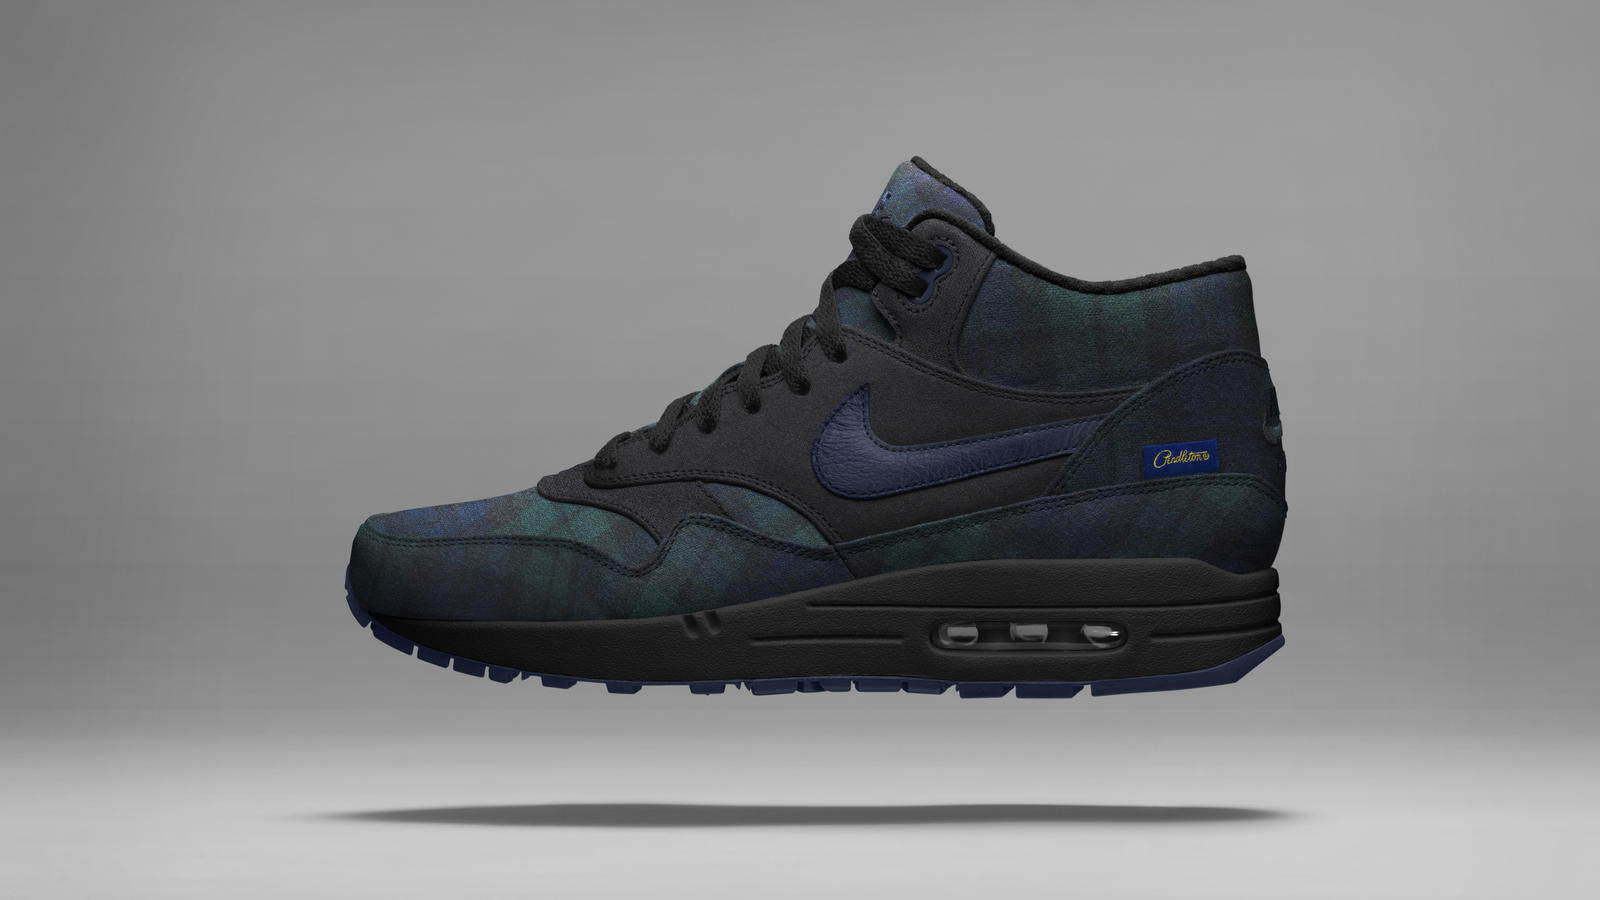 ho14_nikeid_pendleton_collection_am1_mid_sboot